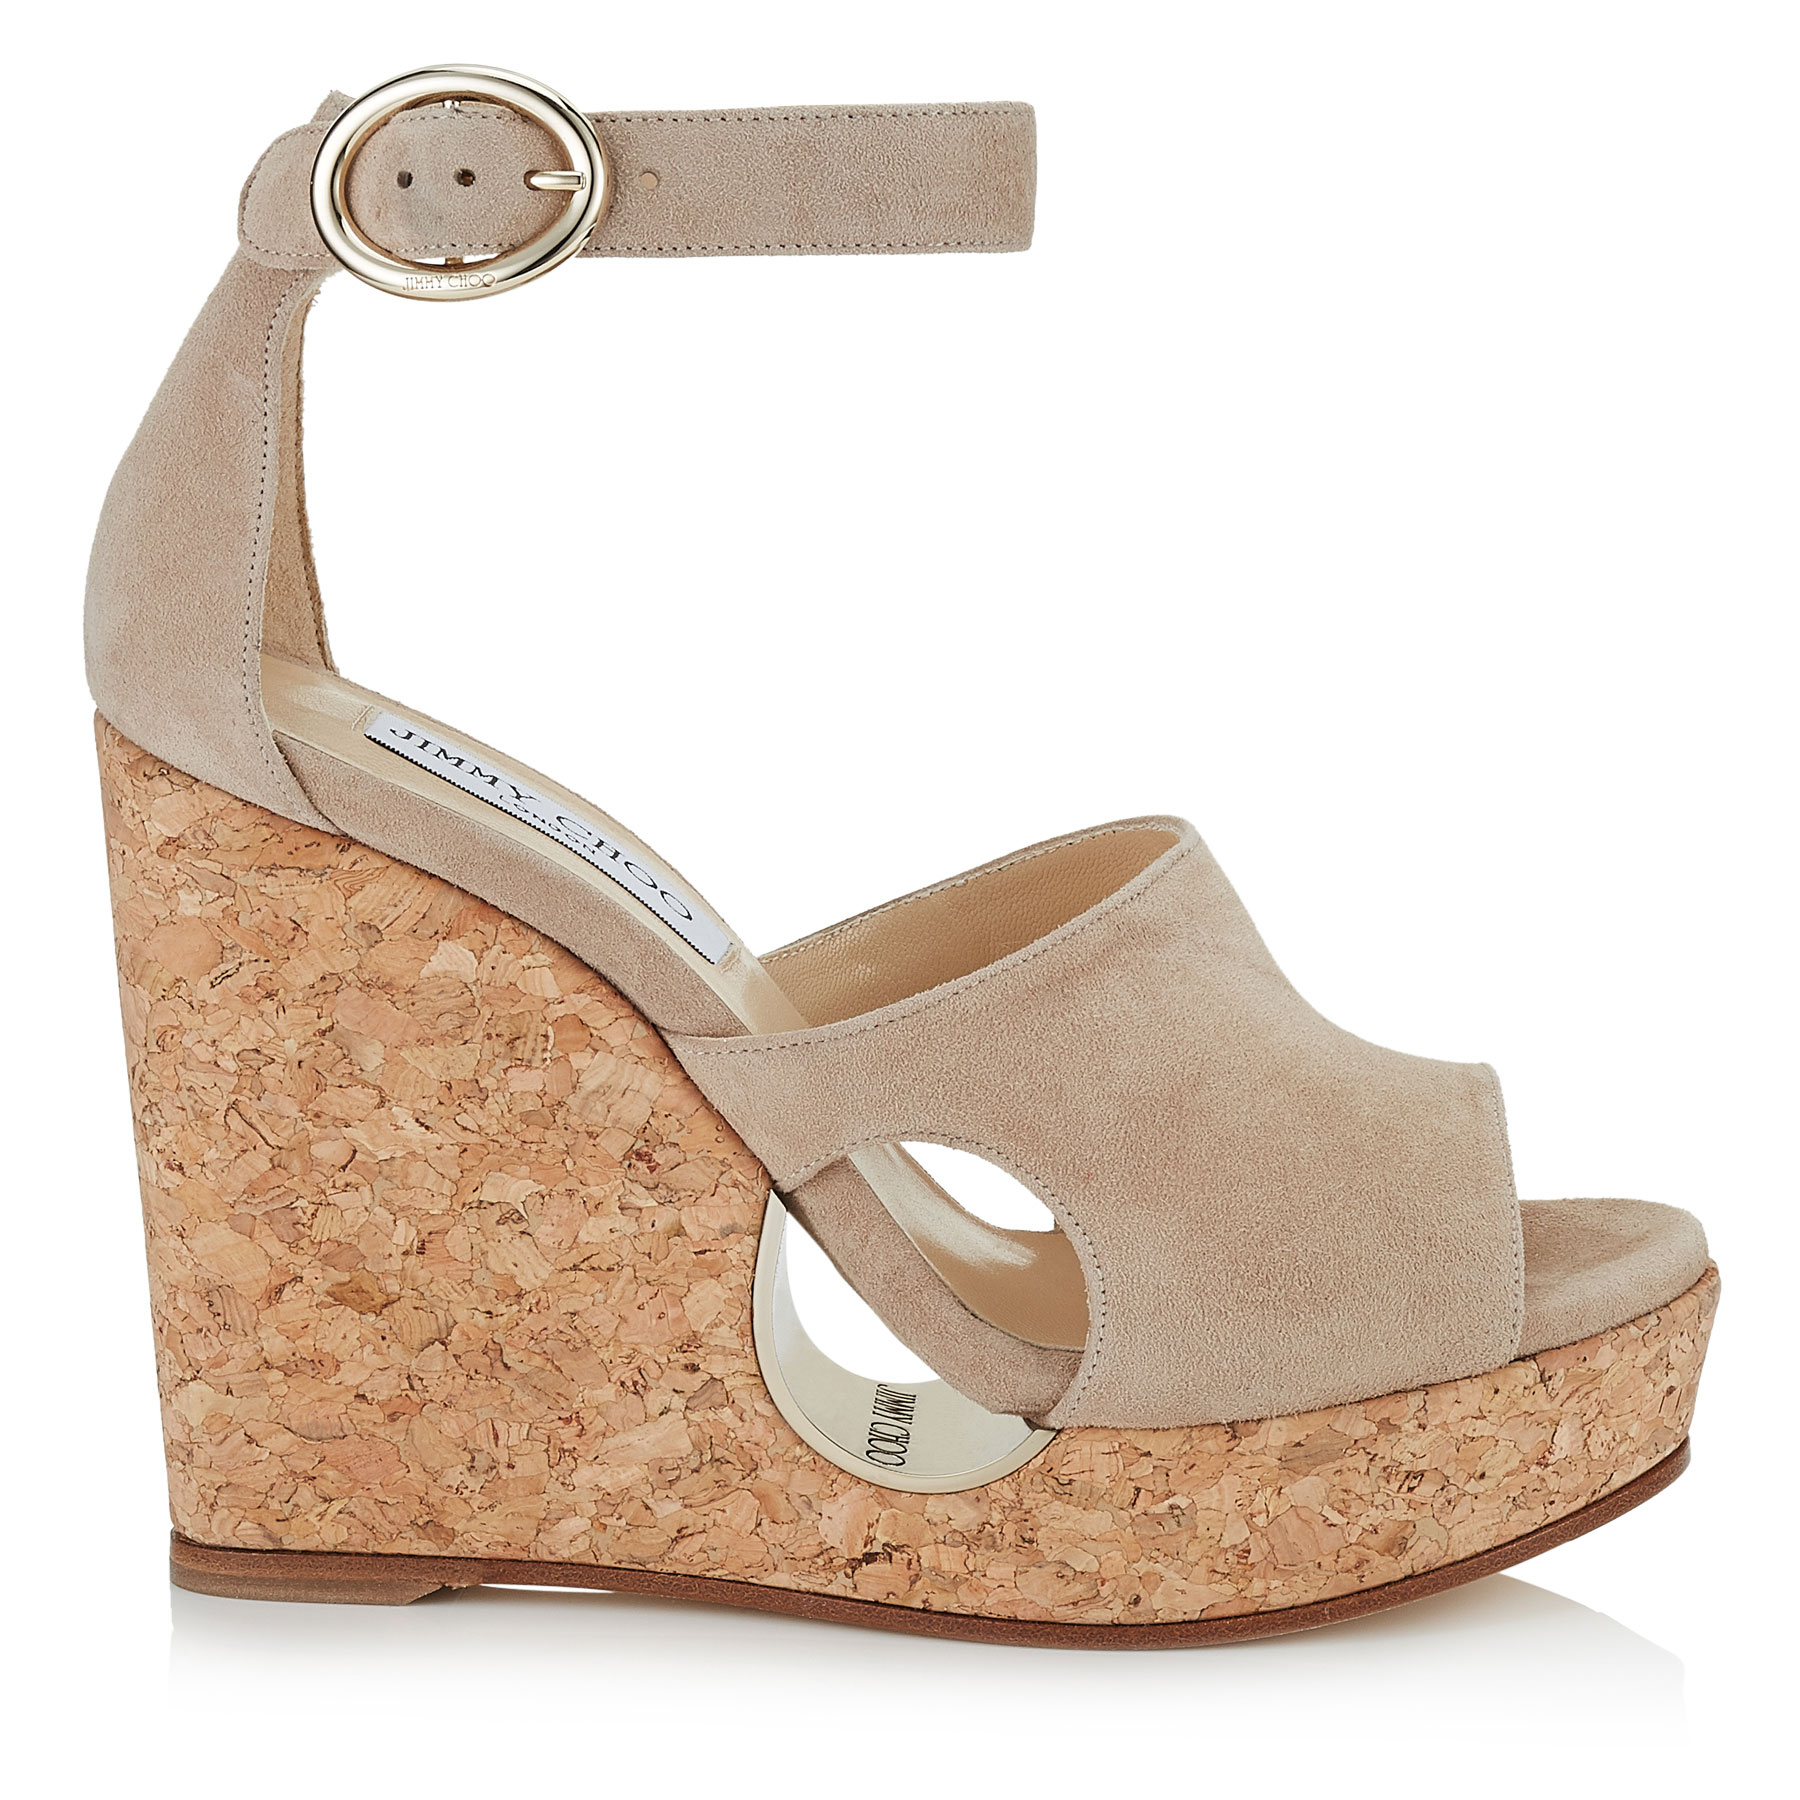 NEYO 120 Nude Suede Cork Wedges with Cut-out